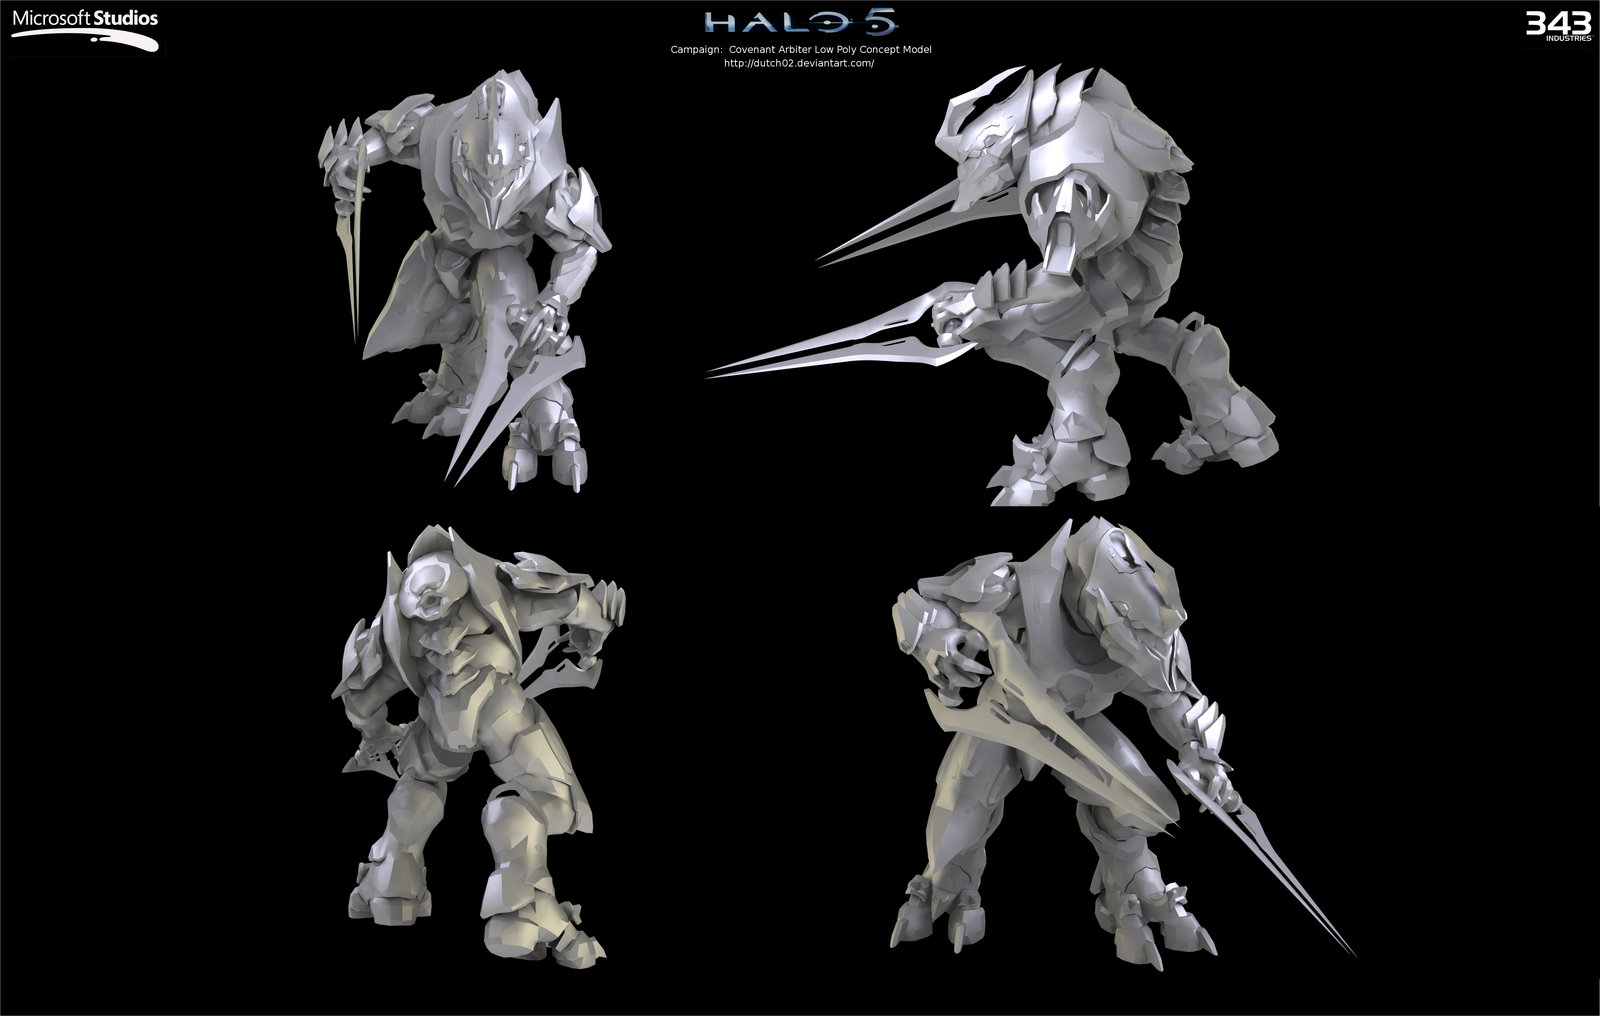 Halo 5 Arbiter Concept by Dutch02 1600x1016